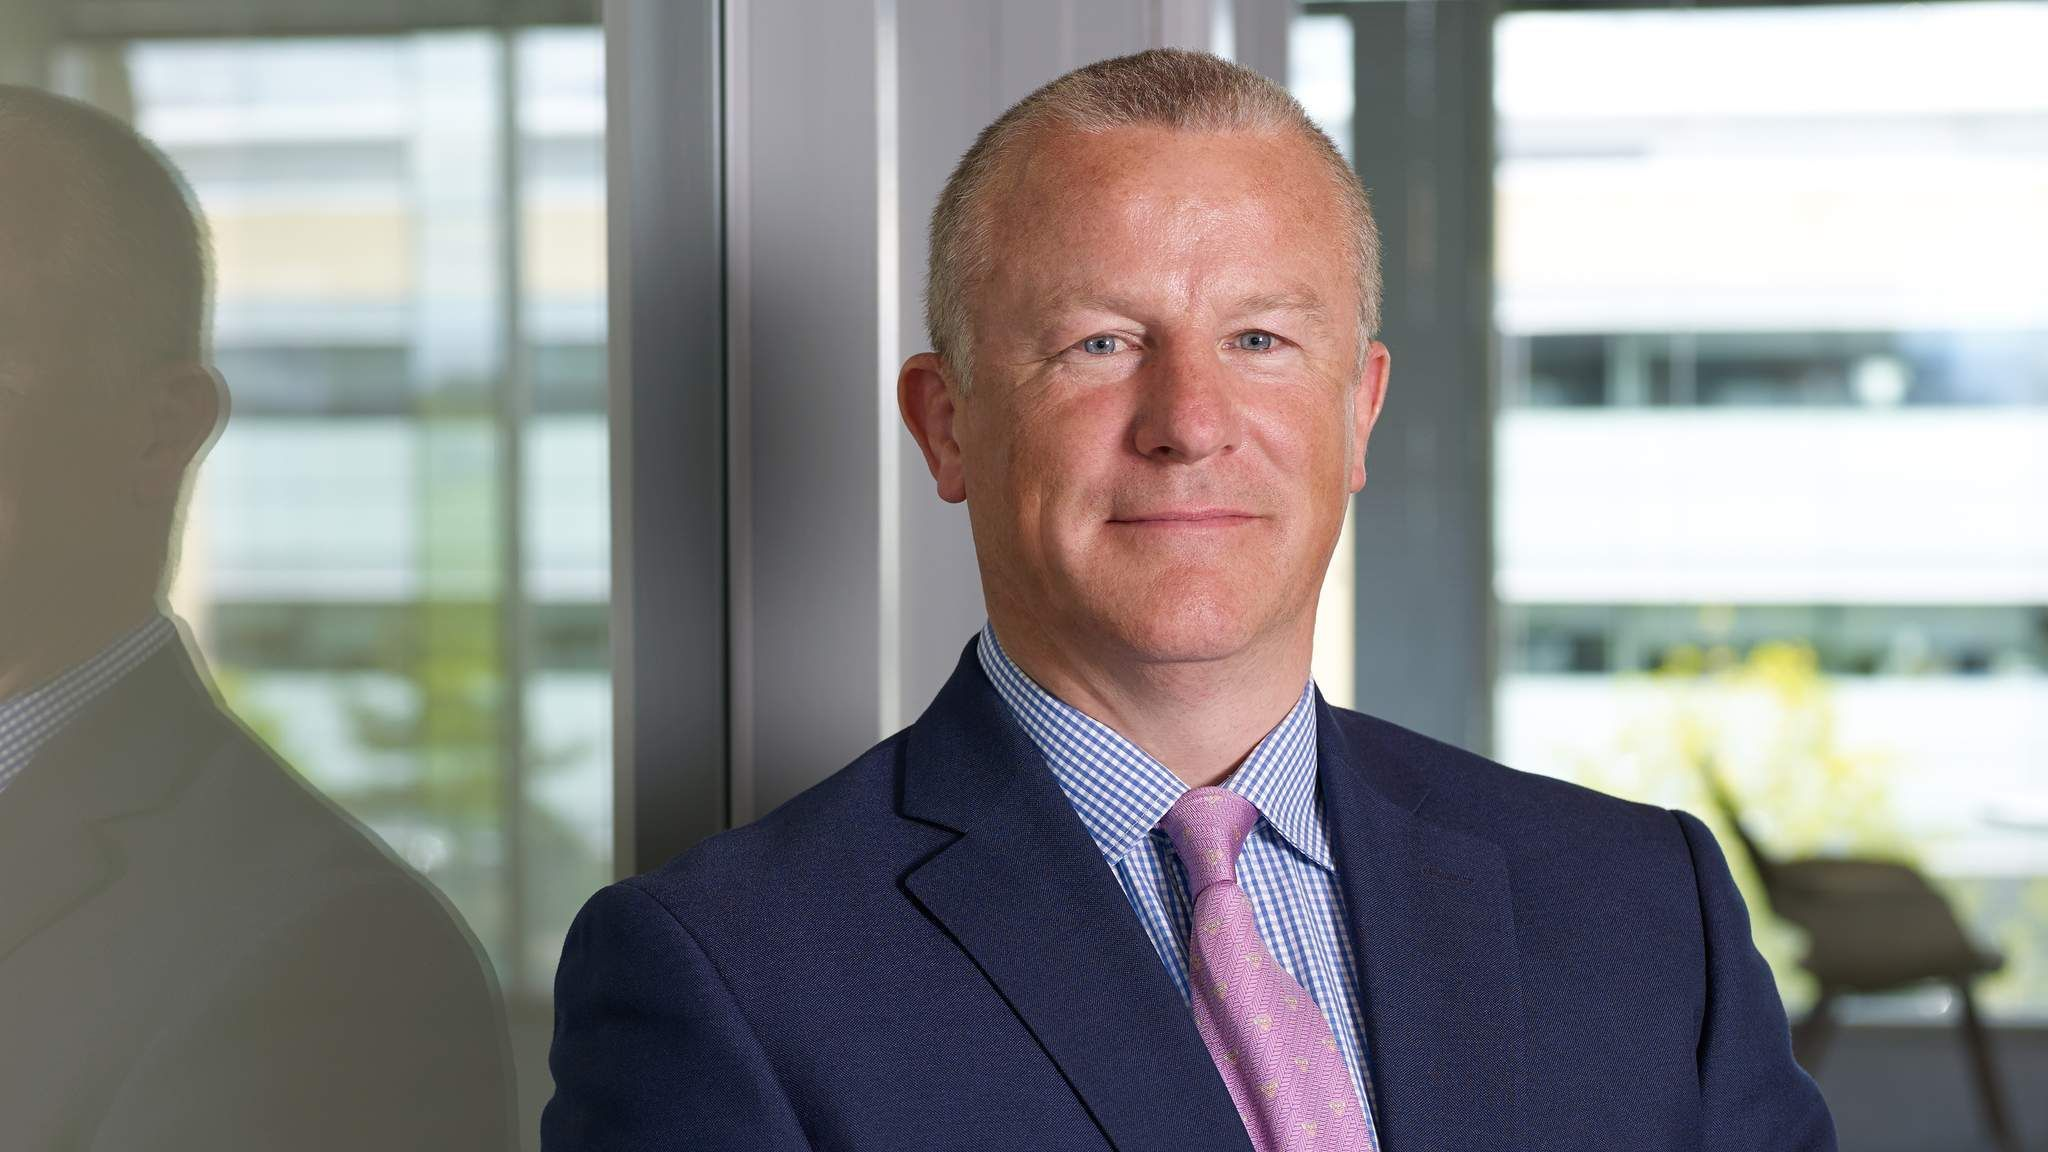 Kent retirement fund faces £60m losses after Woodford fund collapse